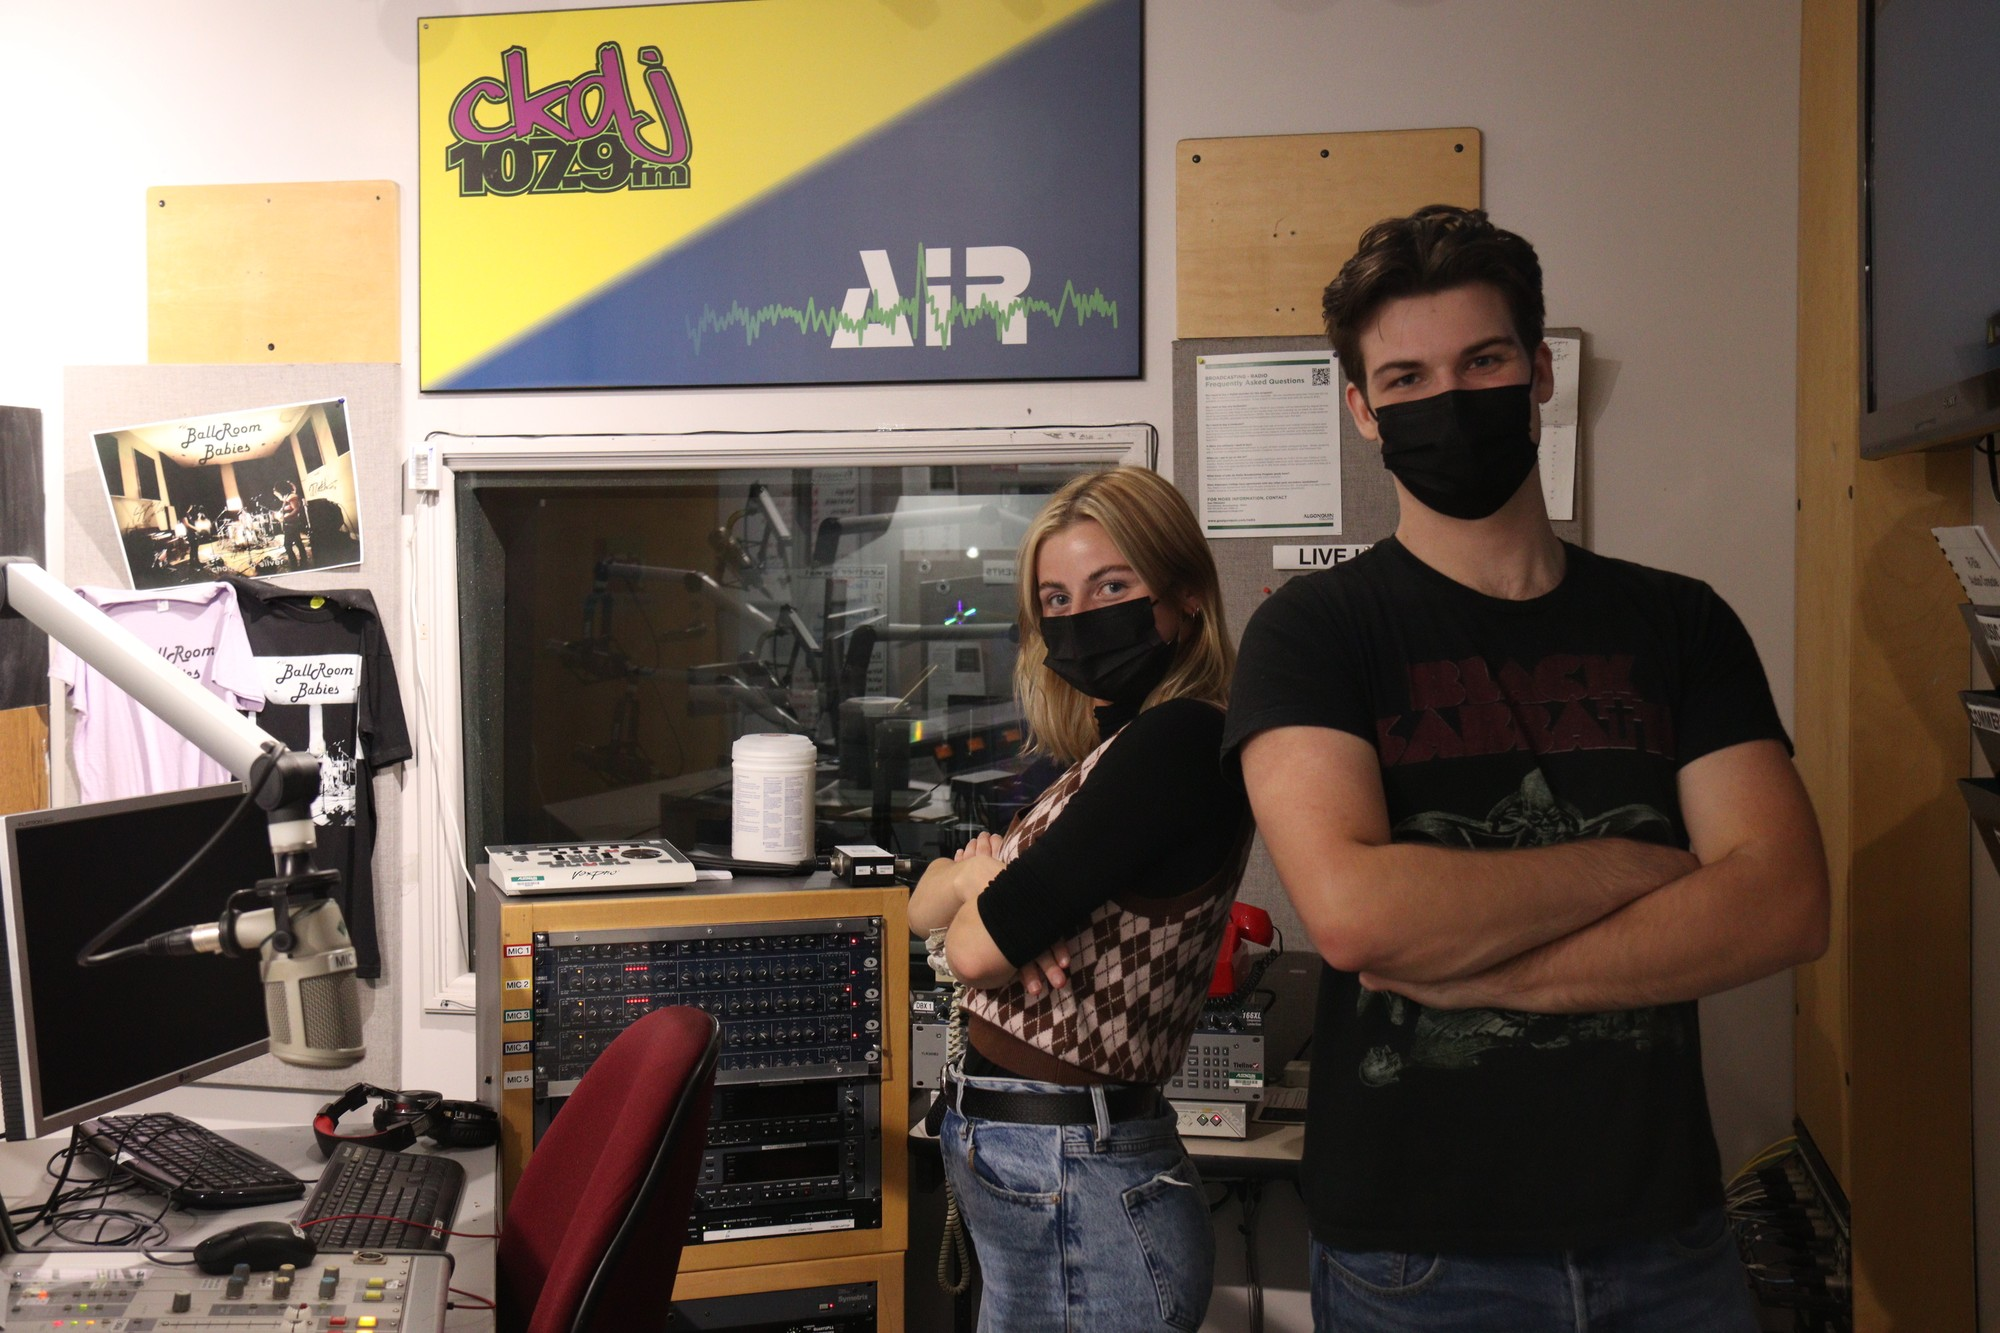 Hosts Tamara Condie and Jeremy Morse begin the night's election coverage on CKDJ 107.9 at 9:30 p.m.